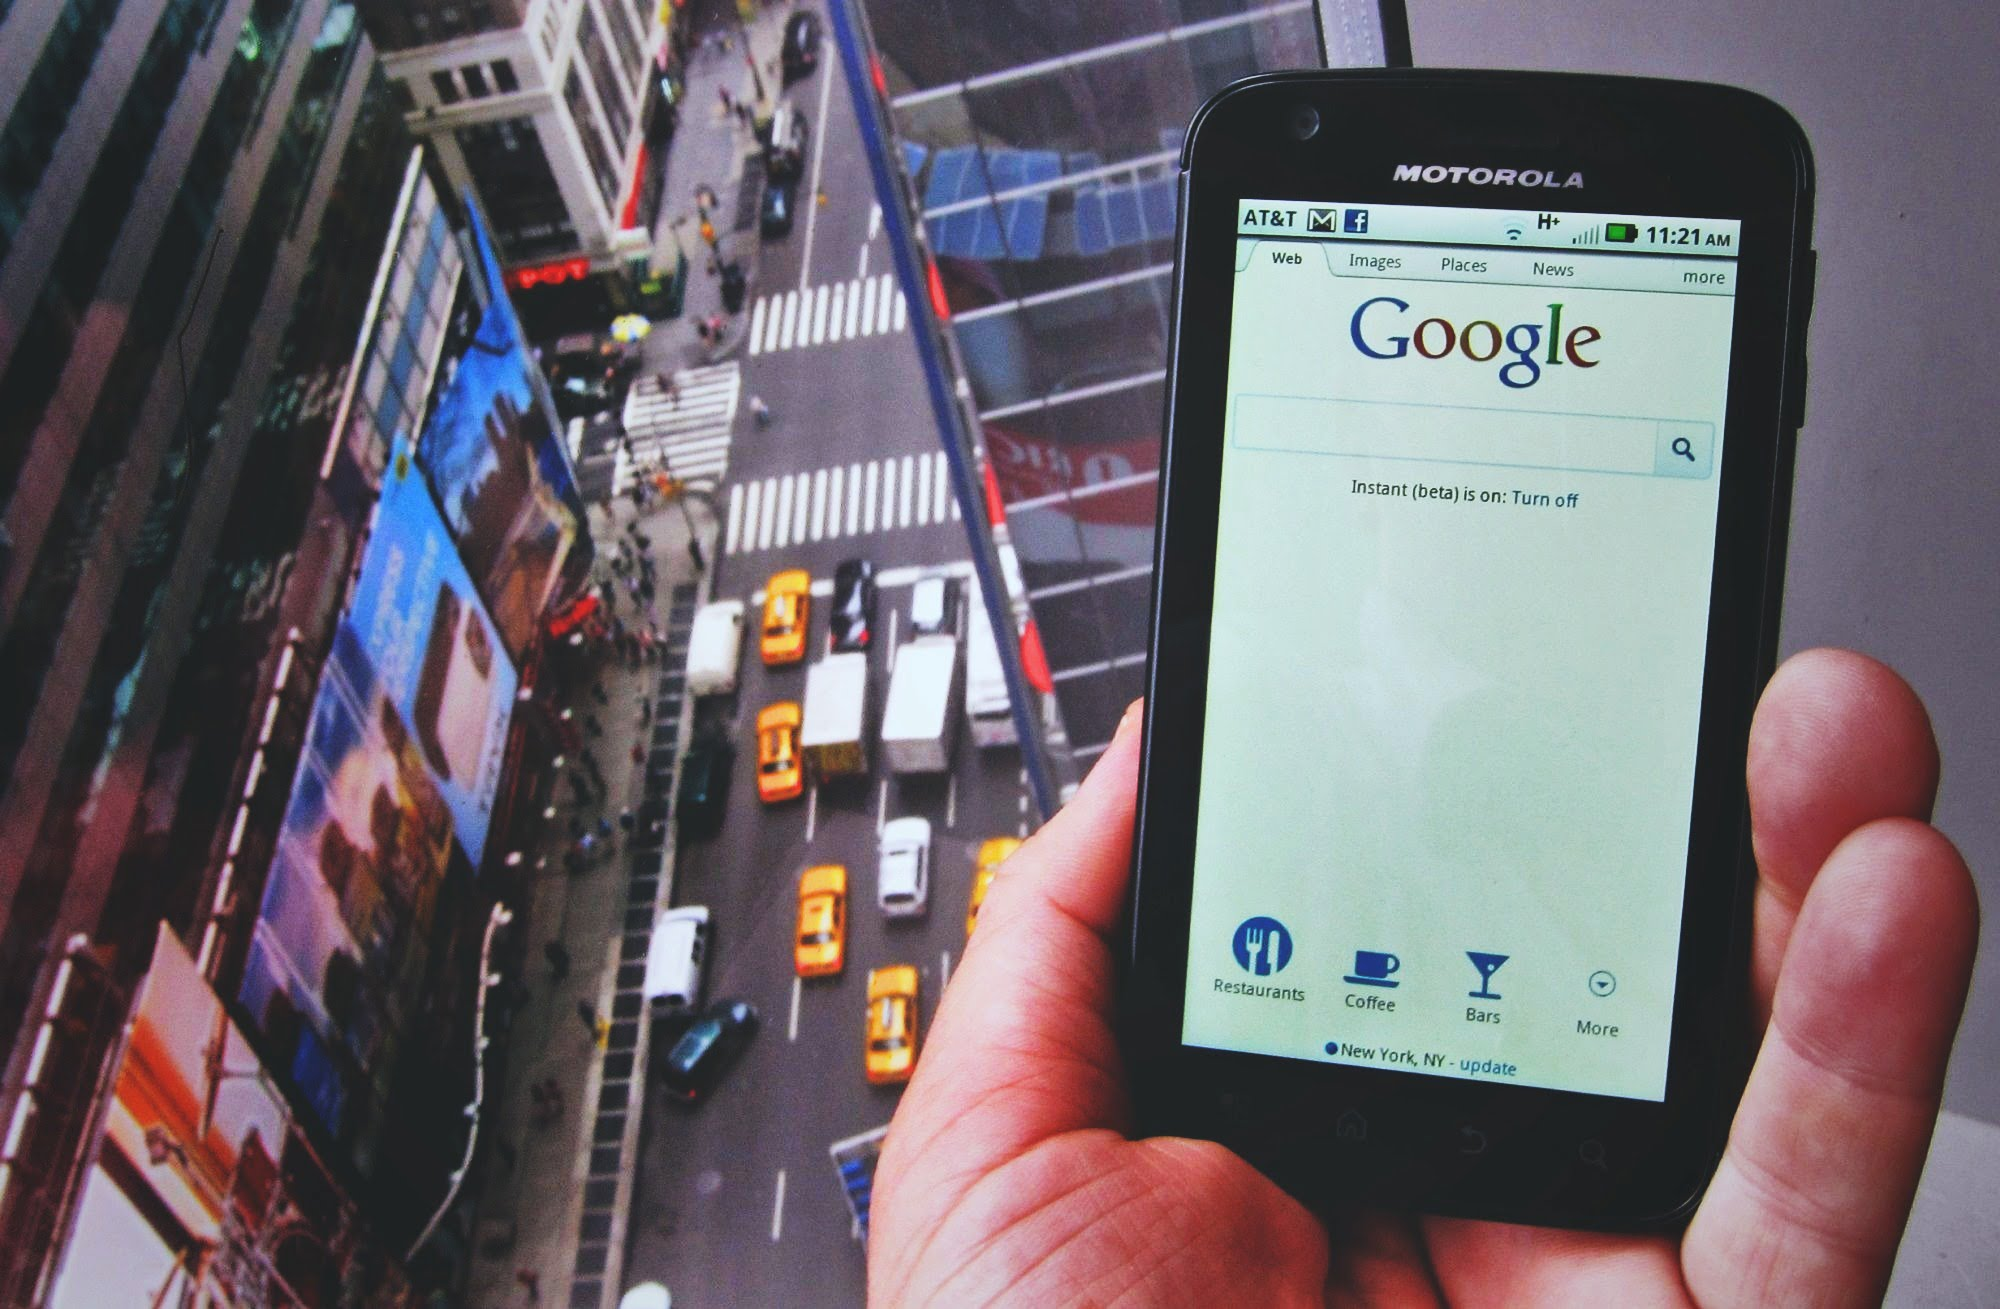 Googles Acquisition of Motorola Mobility for Case Study - ilearnlot